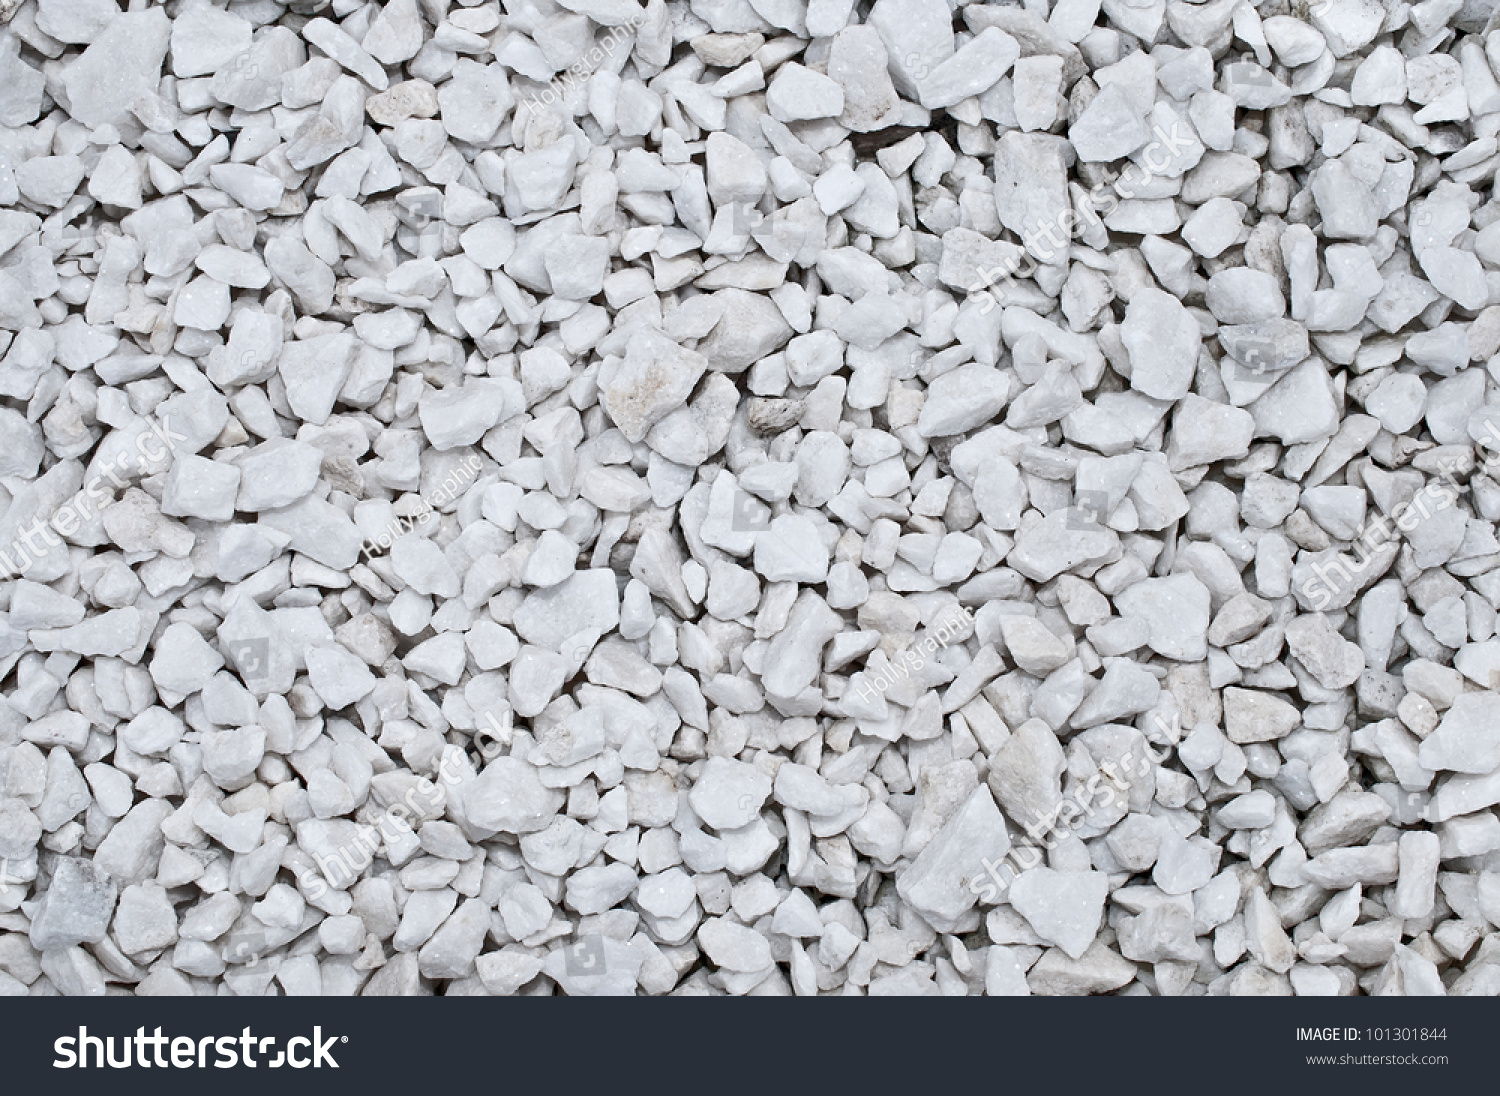 Smooth shaped white stones surface texture background stock photo - White Little Stones Texture Background